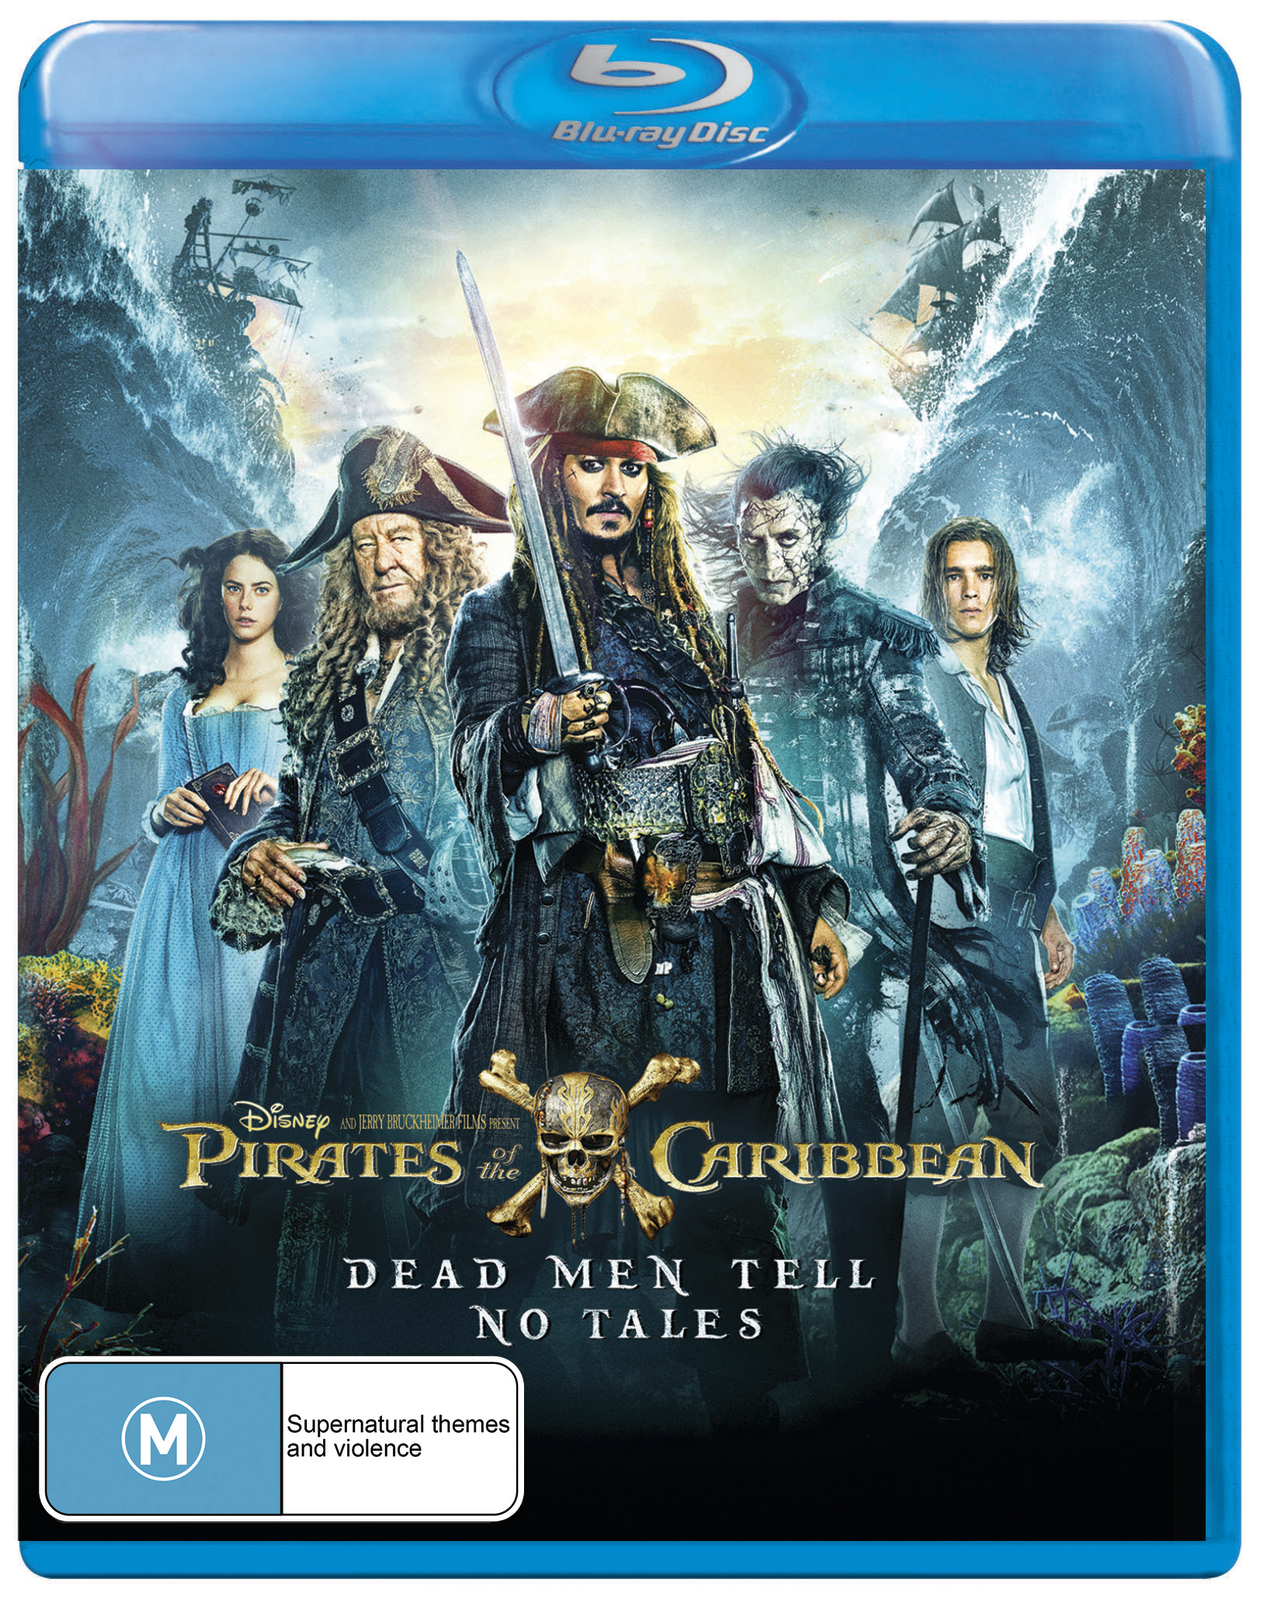 Pirates of the Caribbean: Dead Men Tell No Tales on Blu-ray image